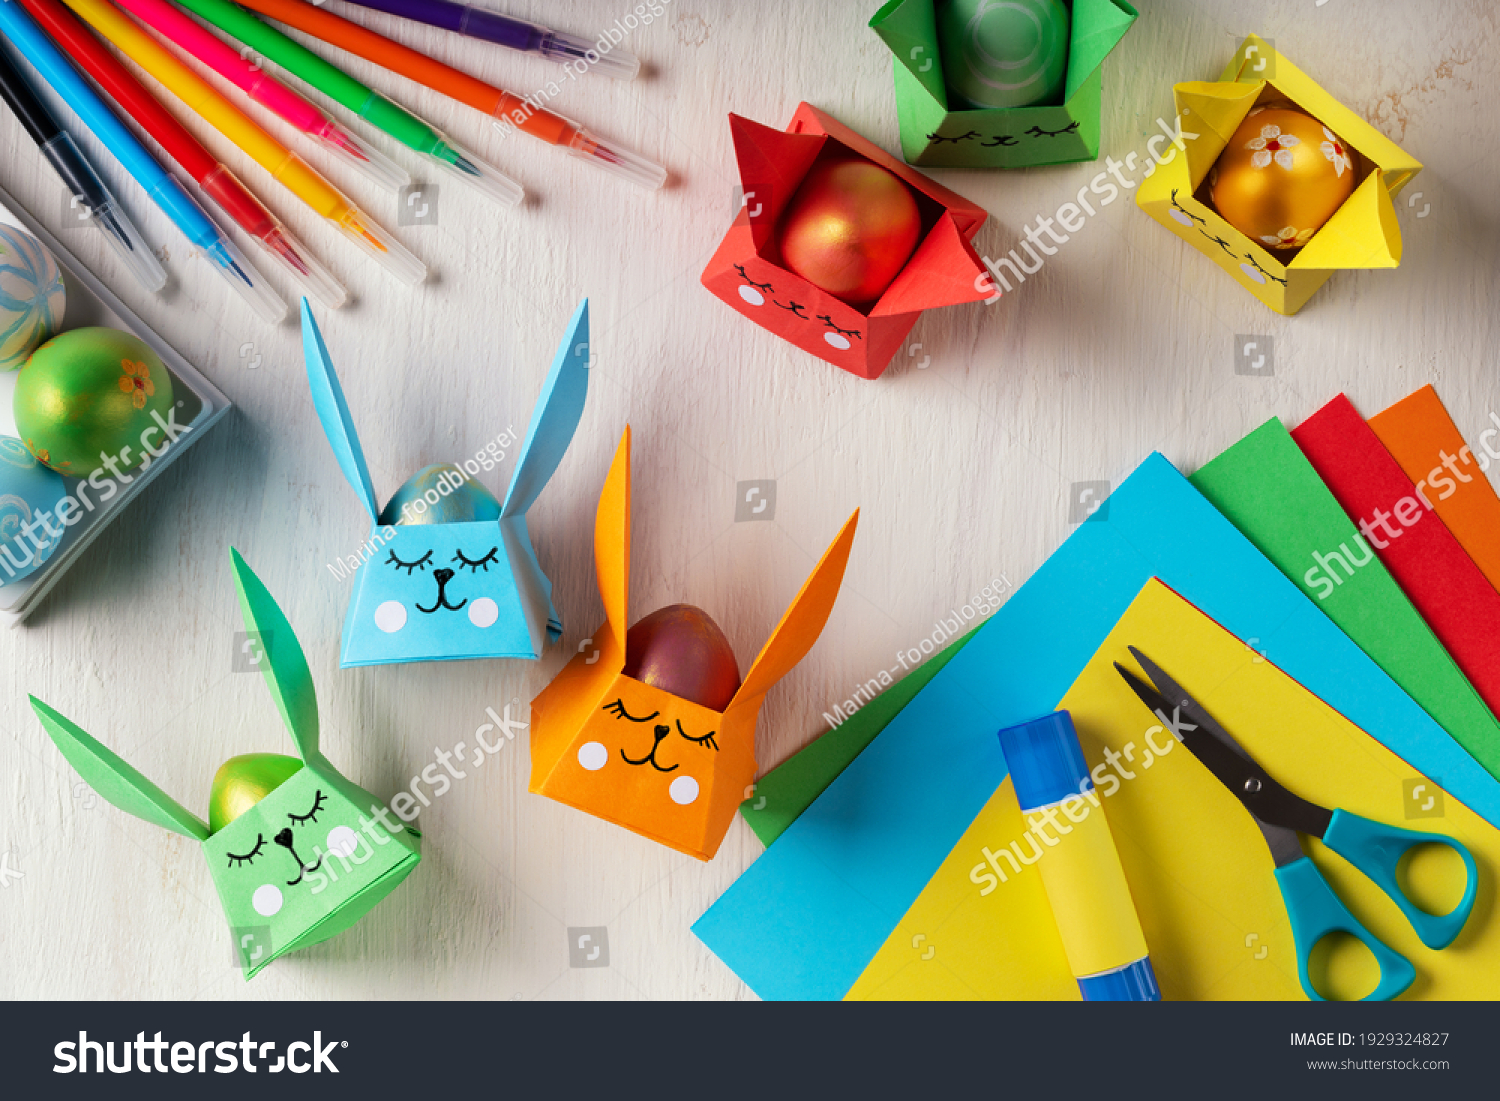 DIY paper crafts for the Easter holiday. Origami paper Easter bunny - egg basket for Easter greetings. Hobbies at home. Self-employment and needlework. DIY concept. Step by step instruction #1929324827